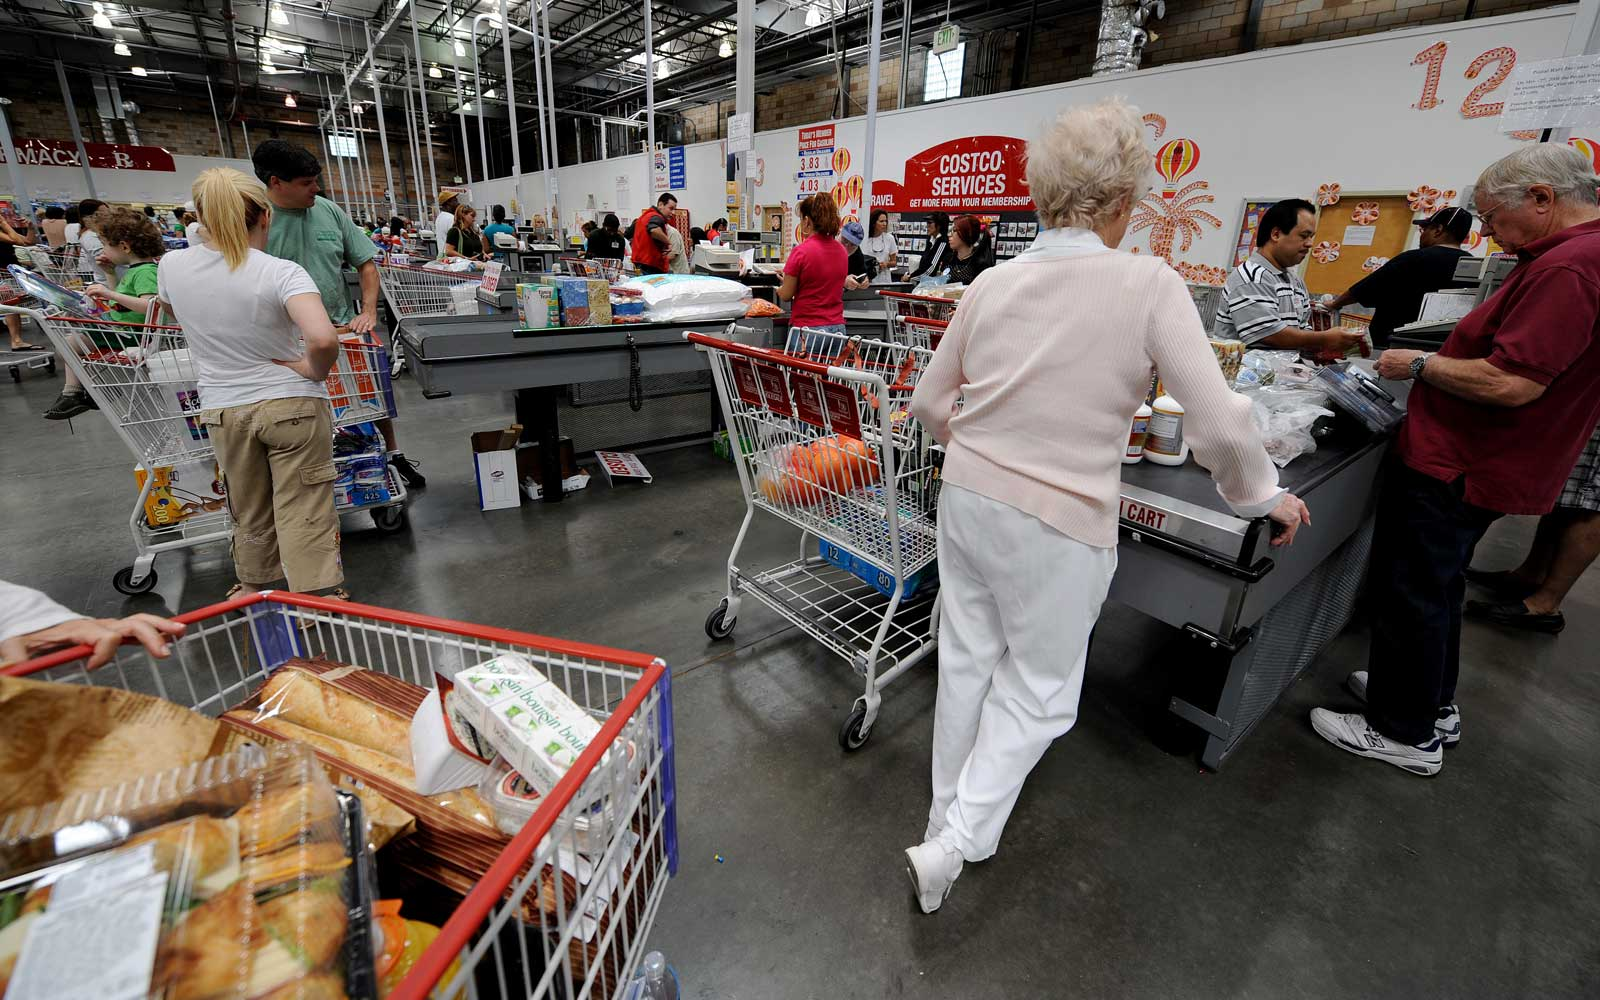 Costco Employees Reveal the 19 Worst Things They've Seen on the Job